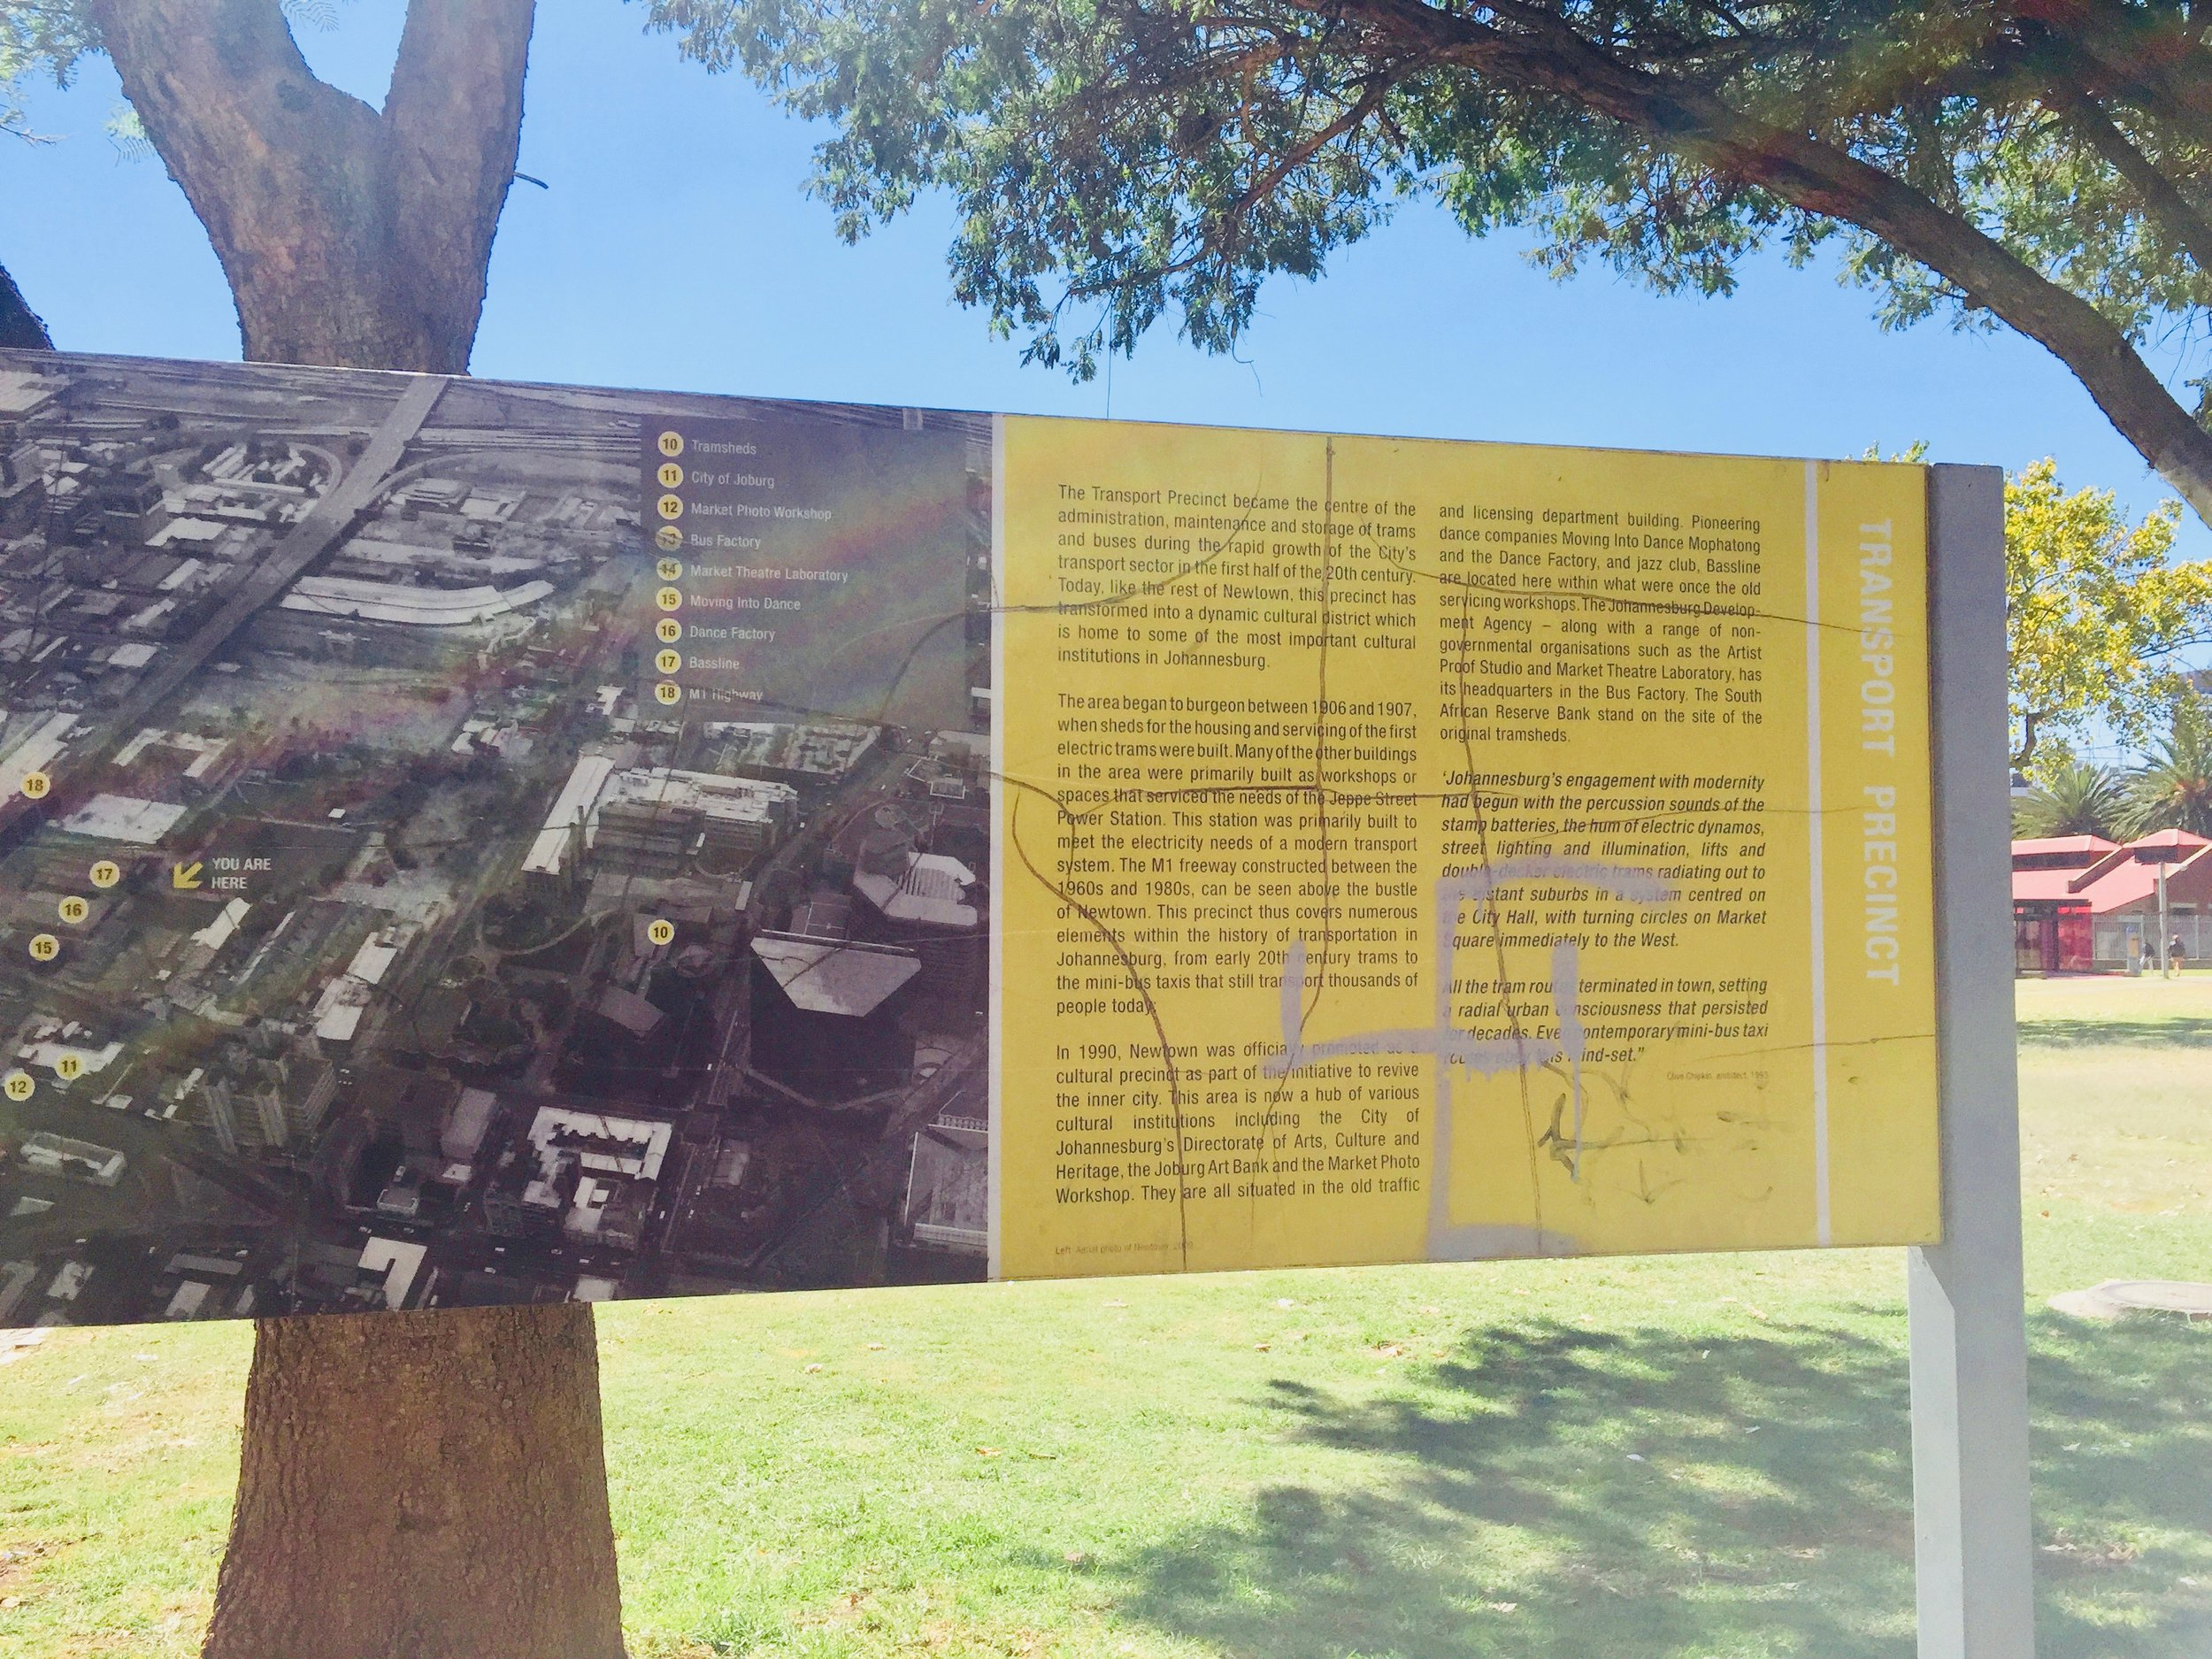 Vandalised heritage boards and signage